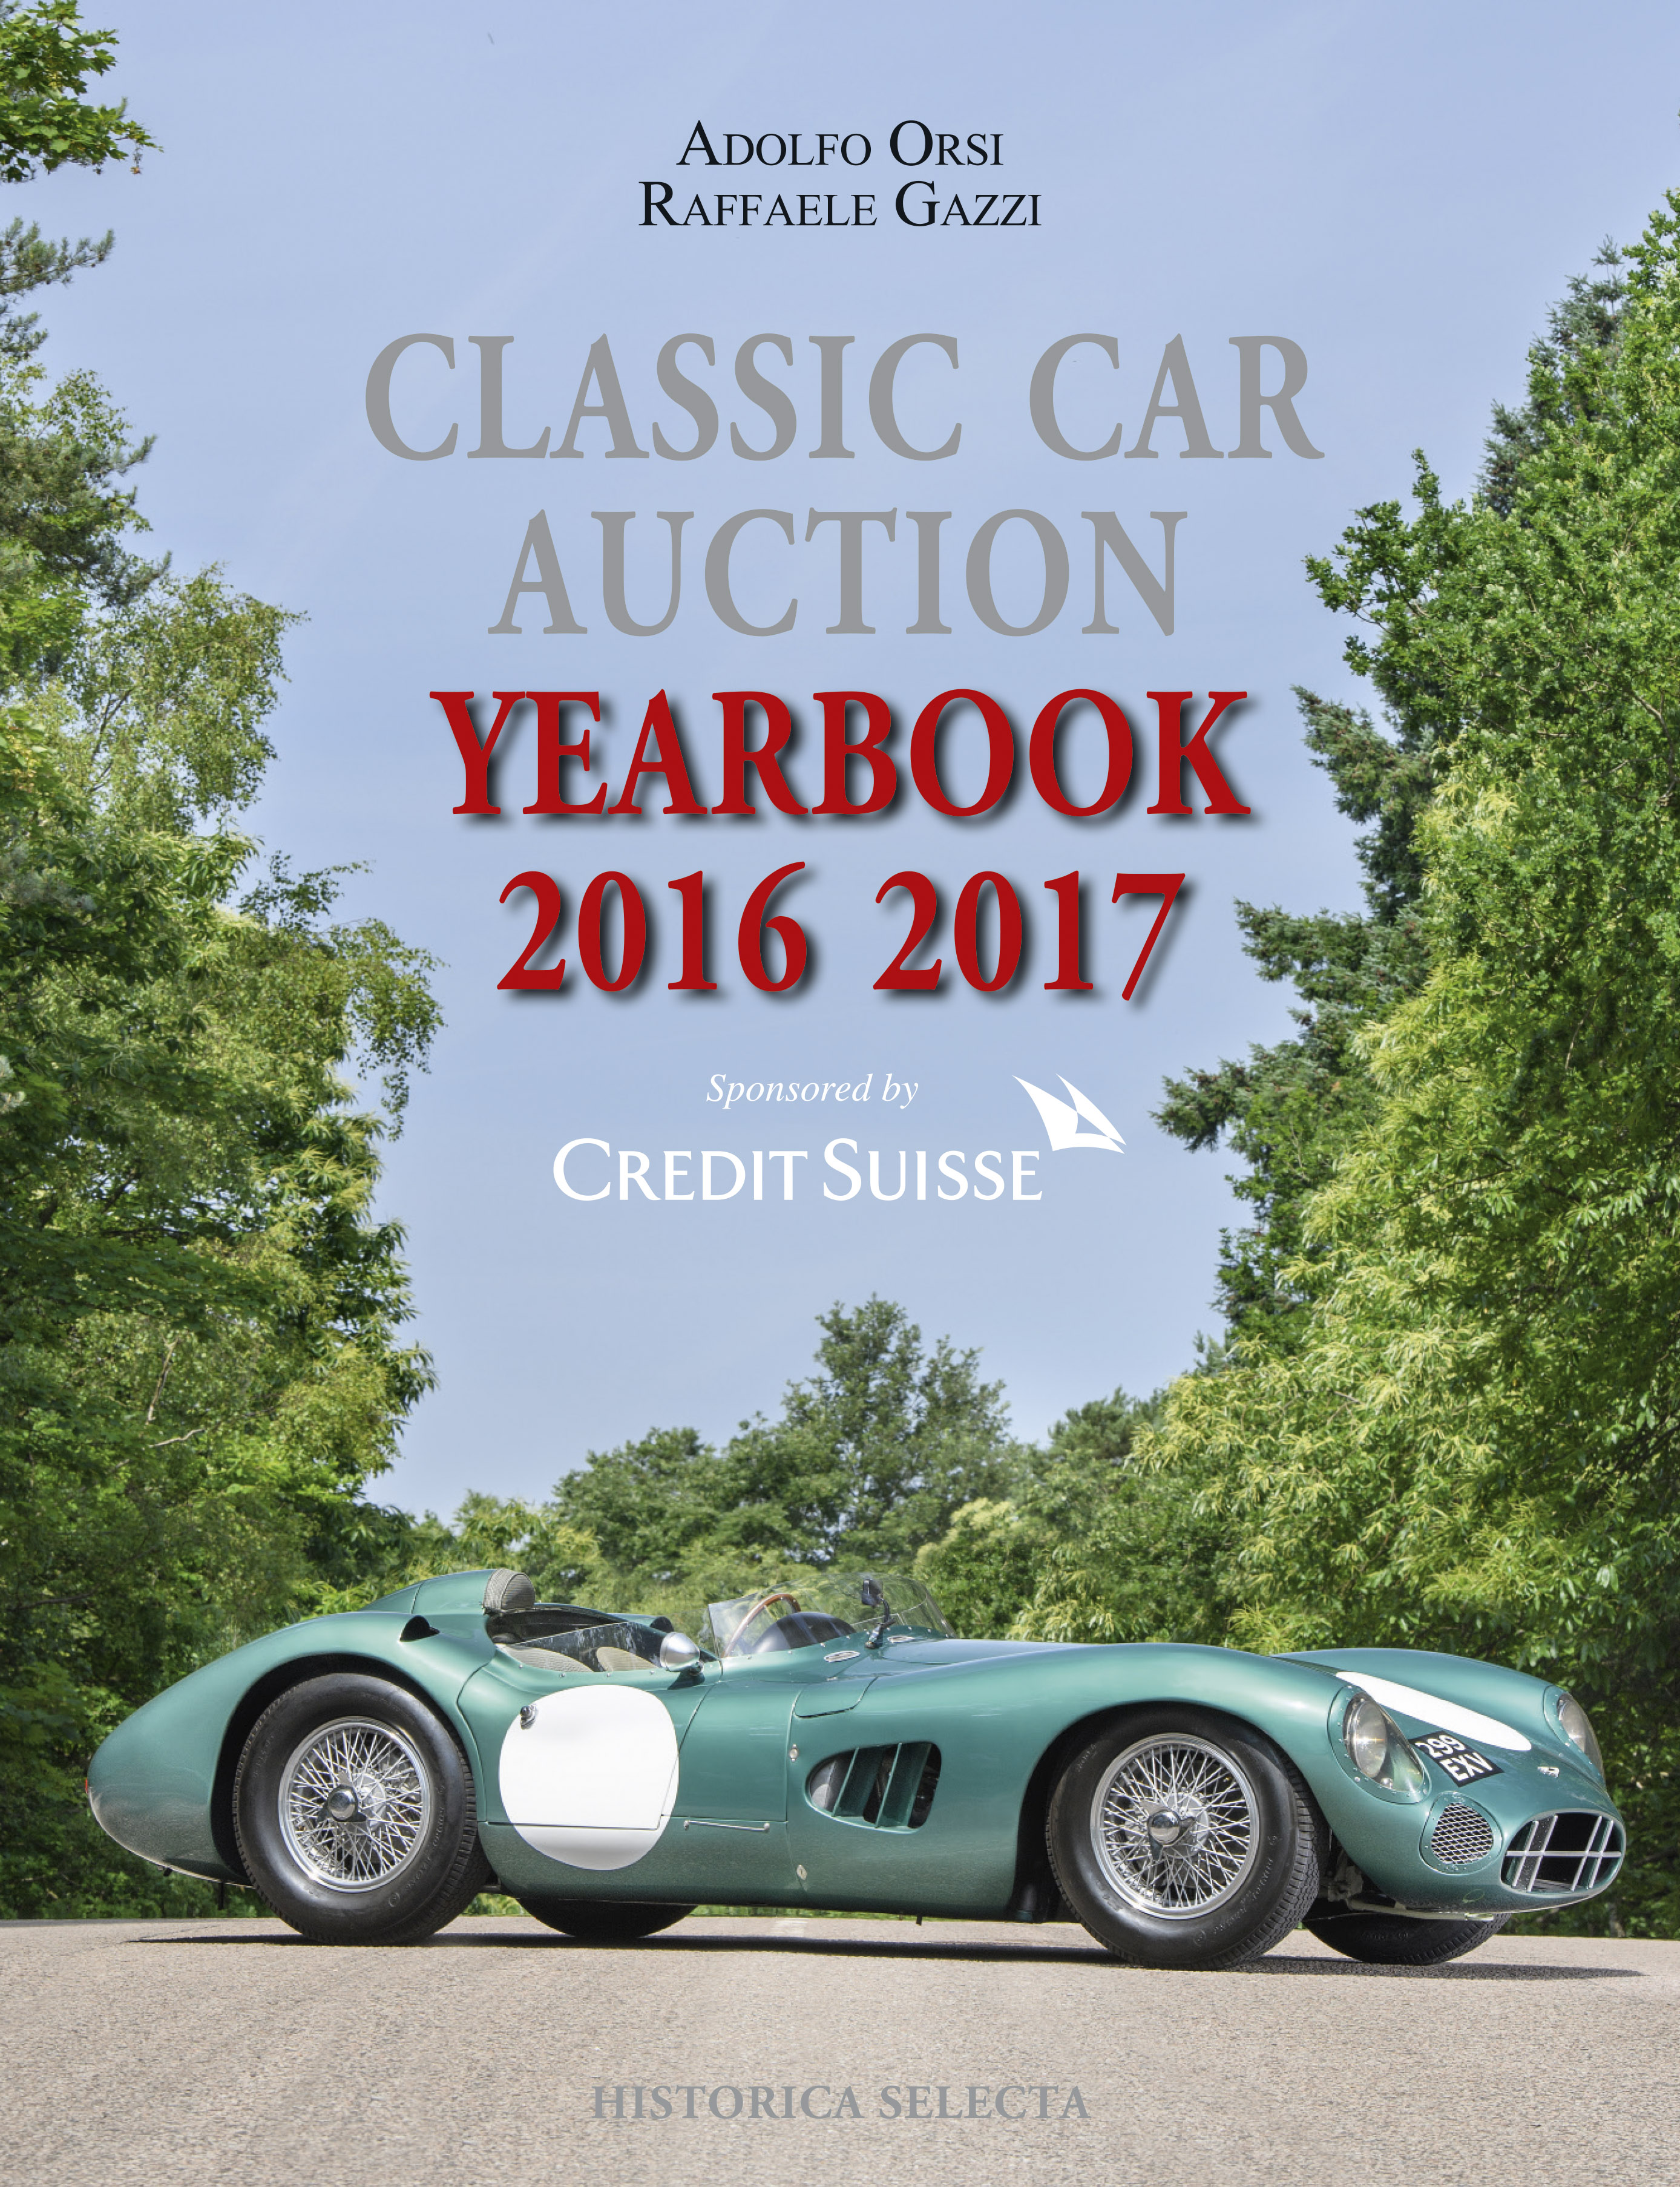 Classic Car Auction Yearbook 2016 2017 - Matt Stone Cars